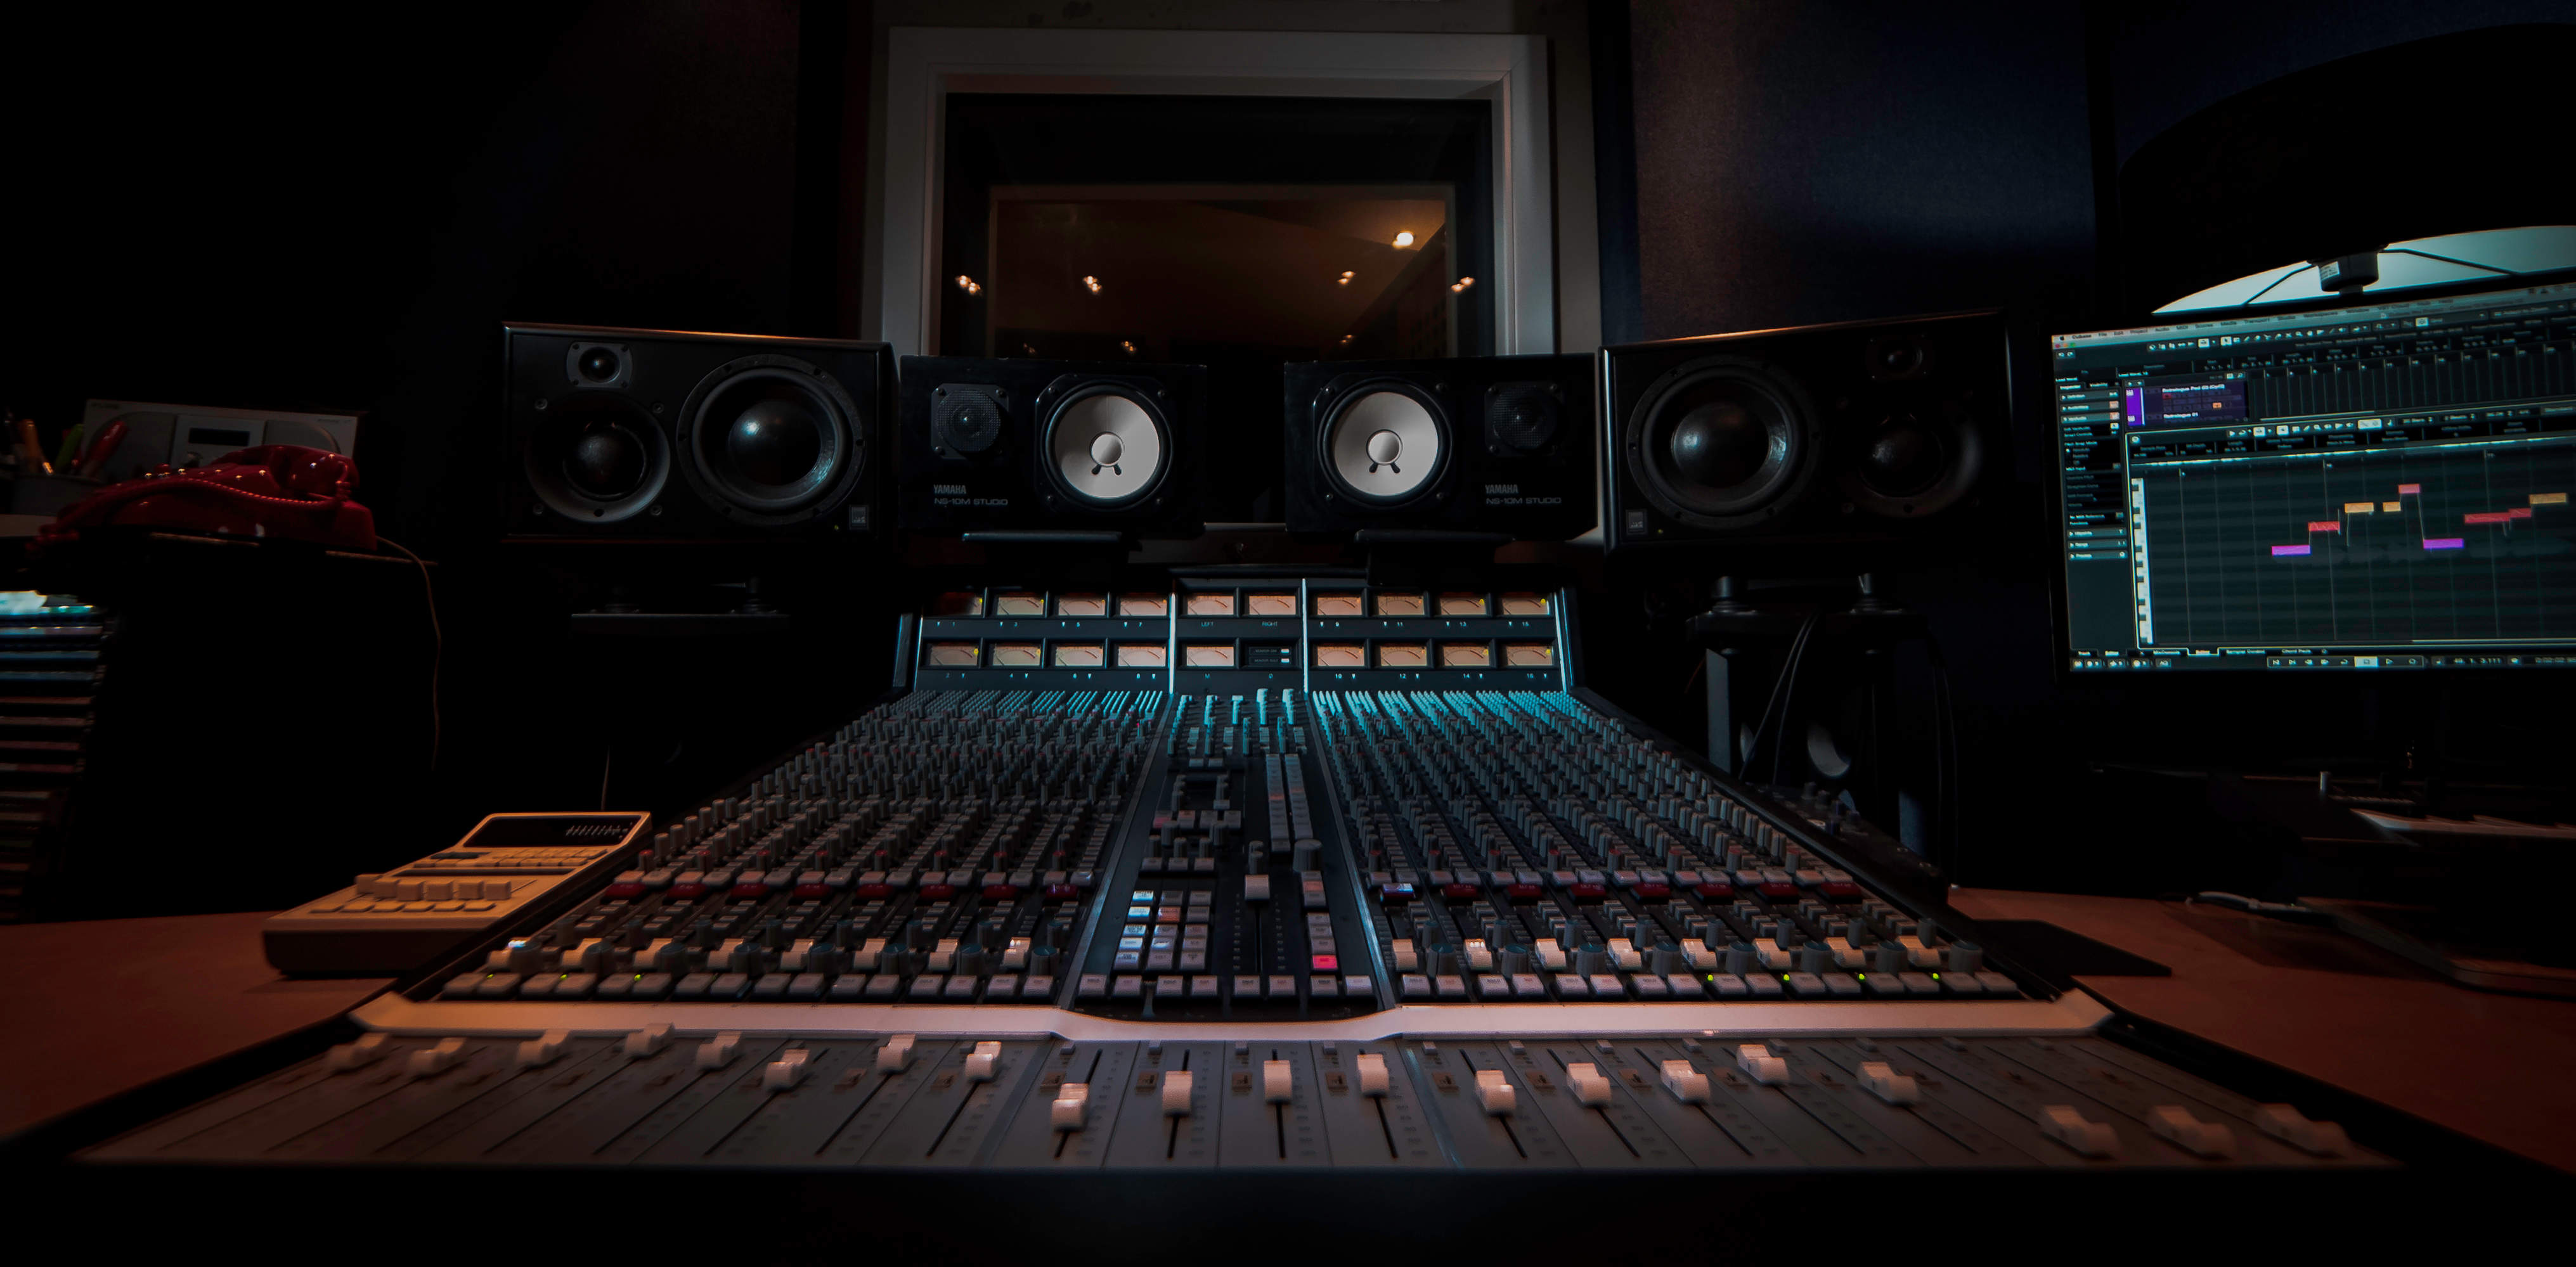 New in Cubase 10: The next generation DAW   Steinberg